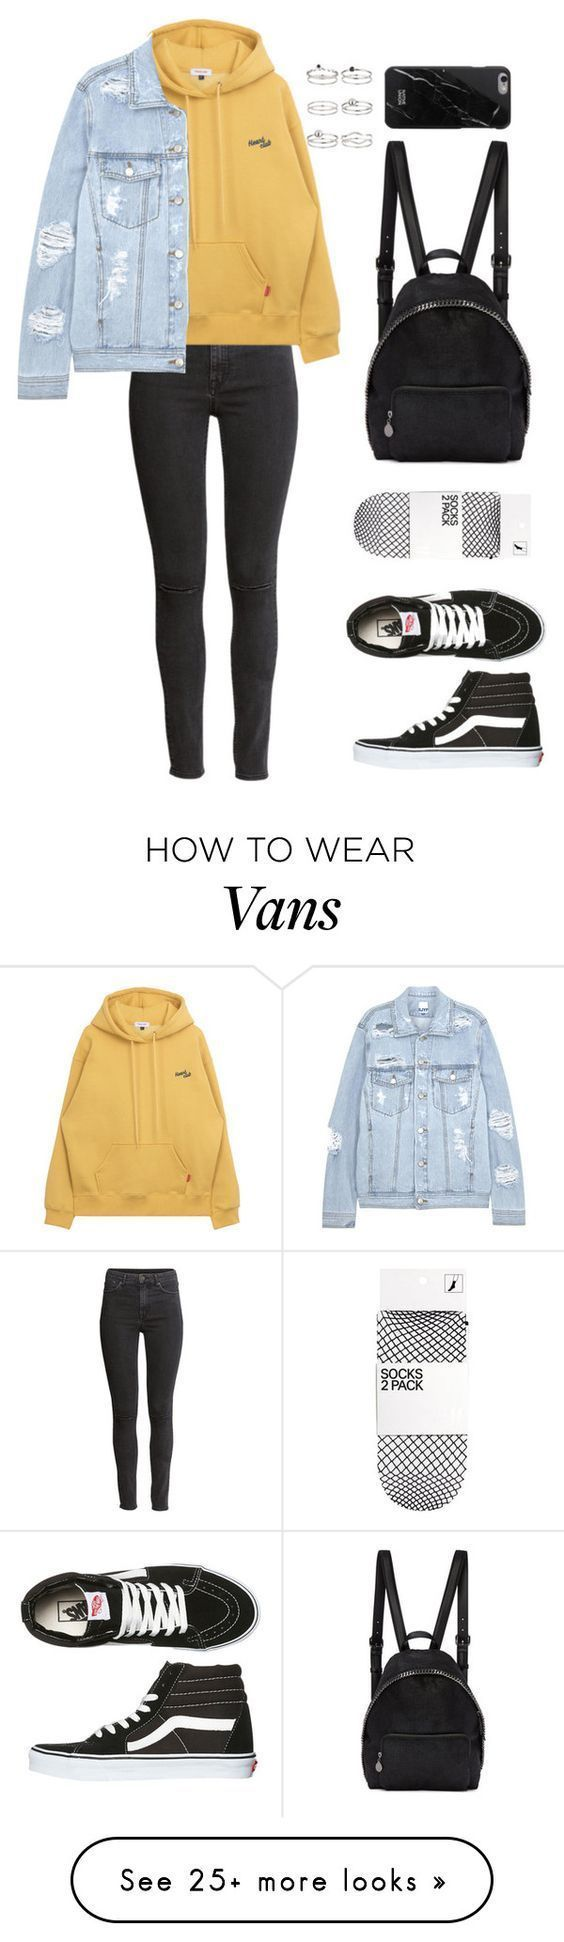 School Outfits for Tweens Ideas – – #SchoolOutfits